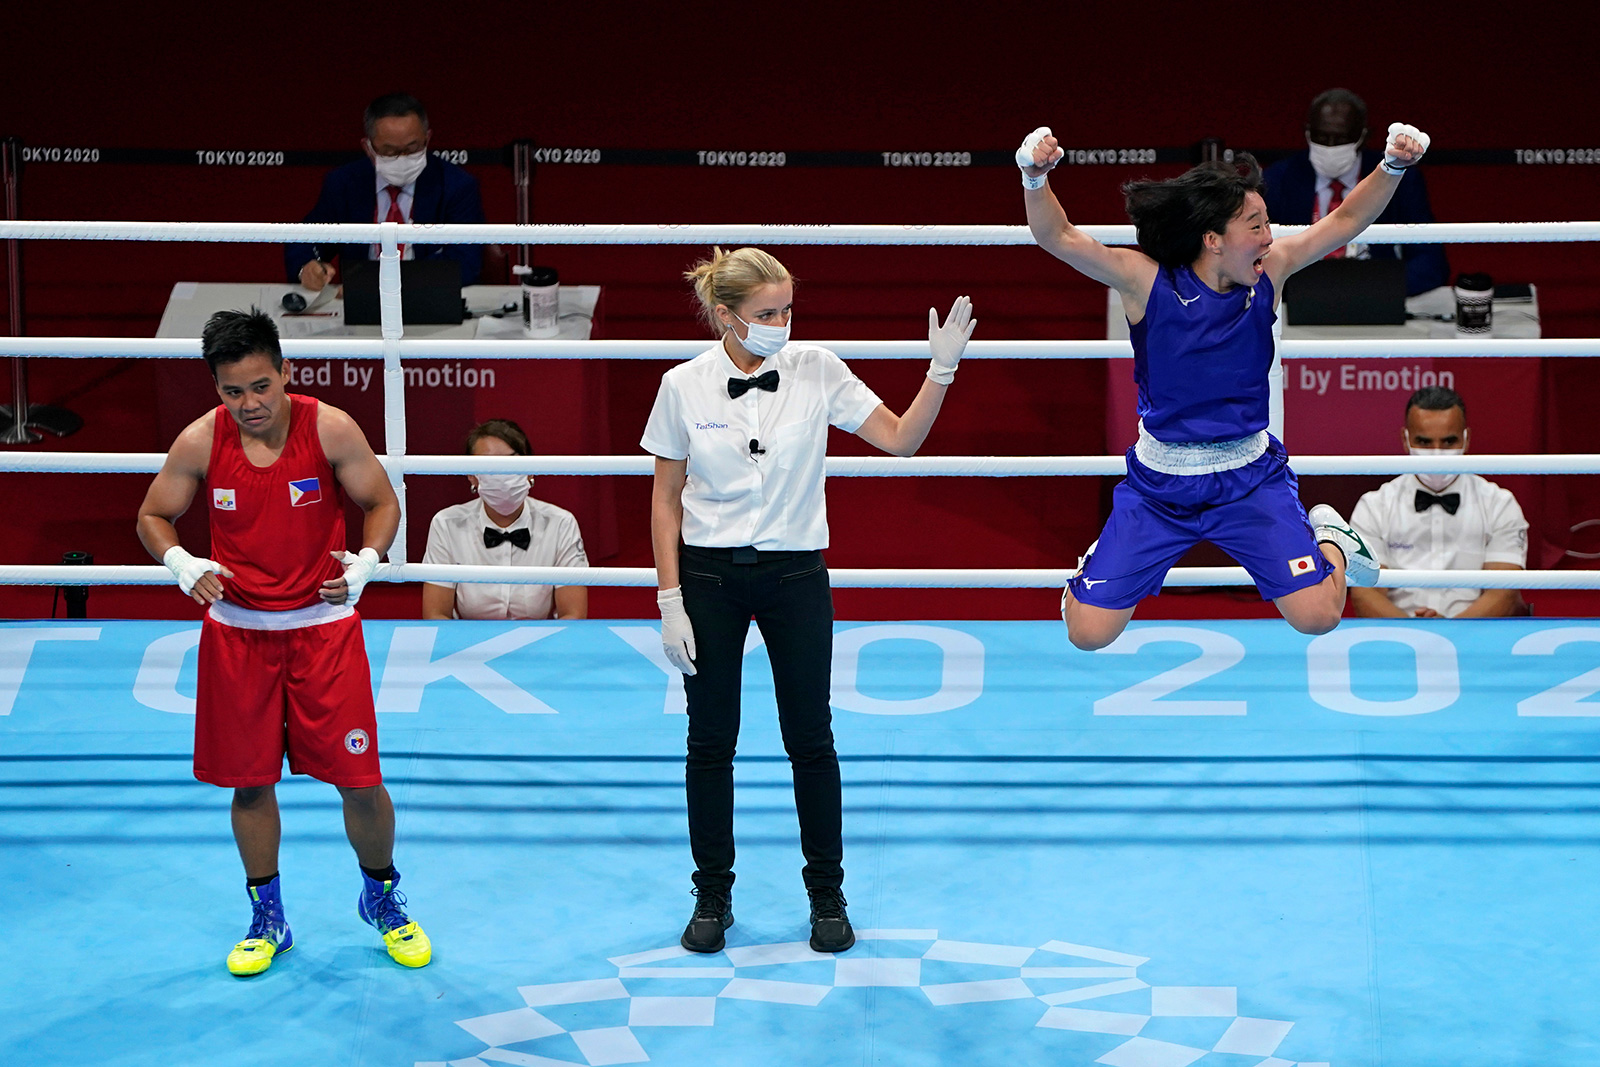 Japan's Sena Irie, right, celebrates defeating Philippines's Nesthy Petecio to win the women's featherweight 60-kg final boxing match on Tuesday.